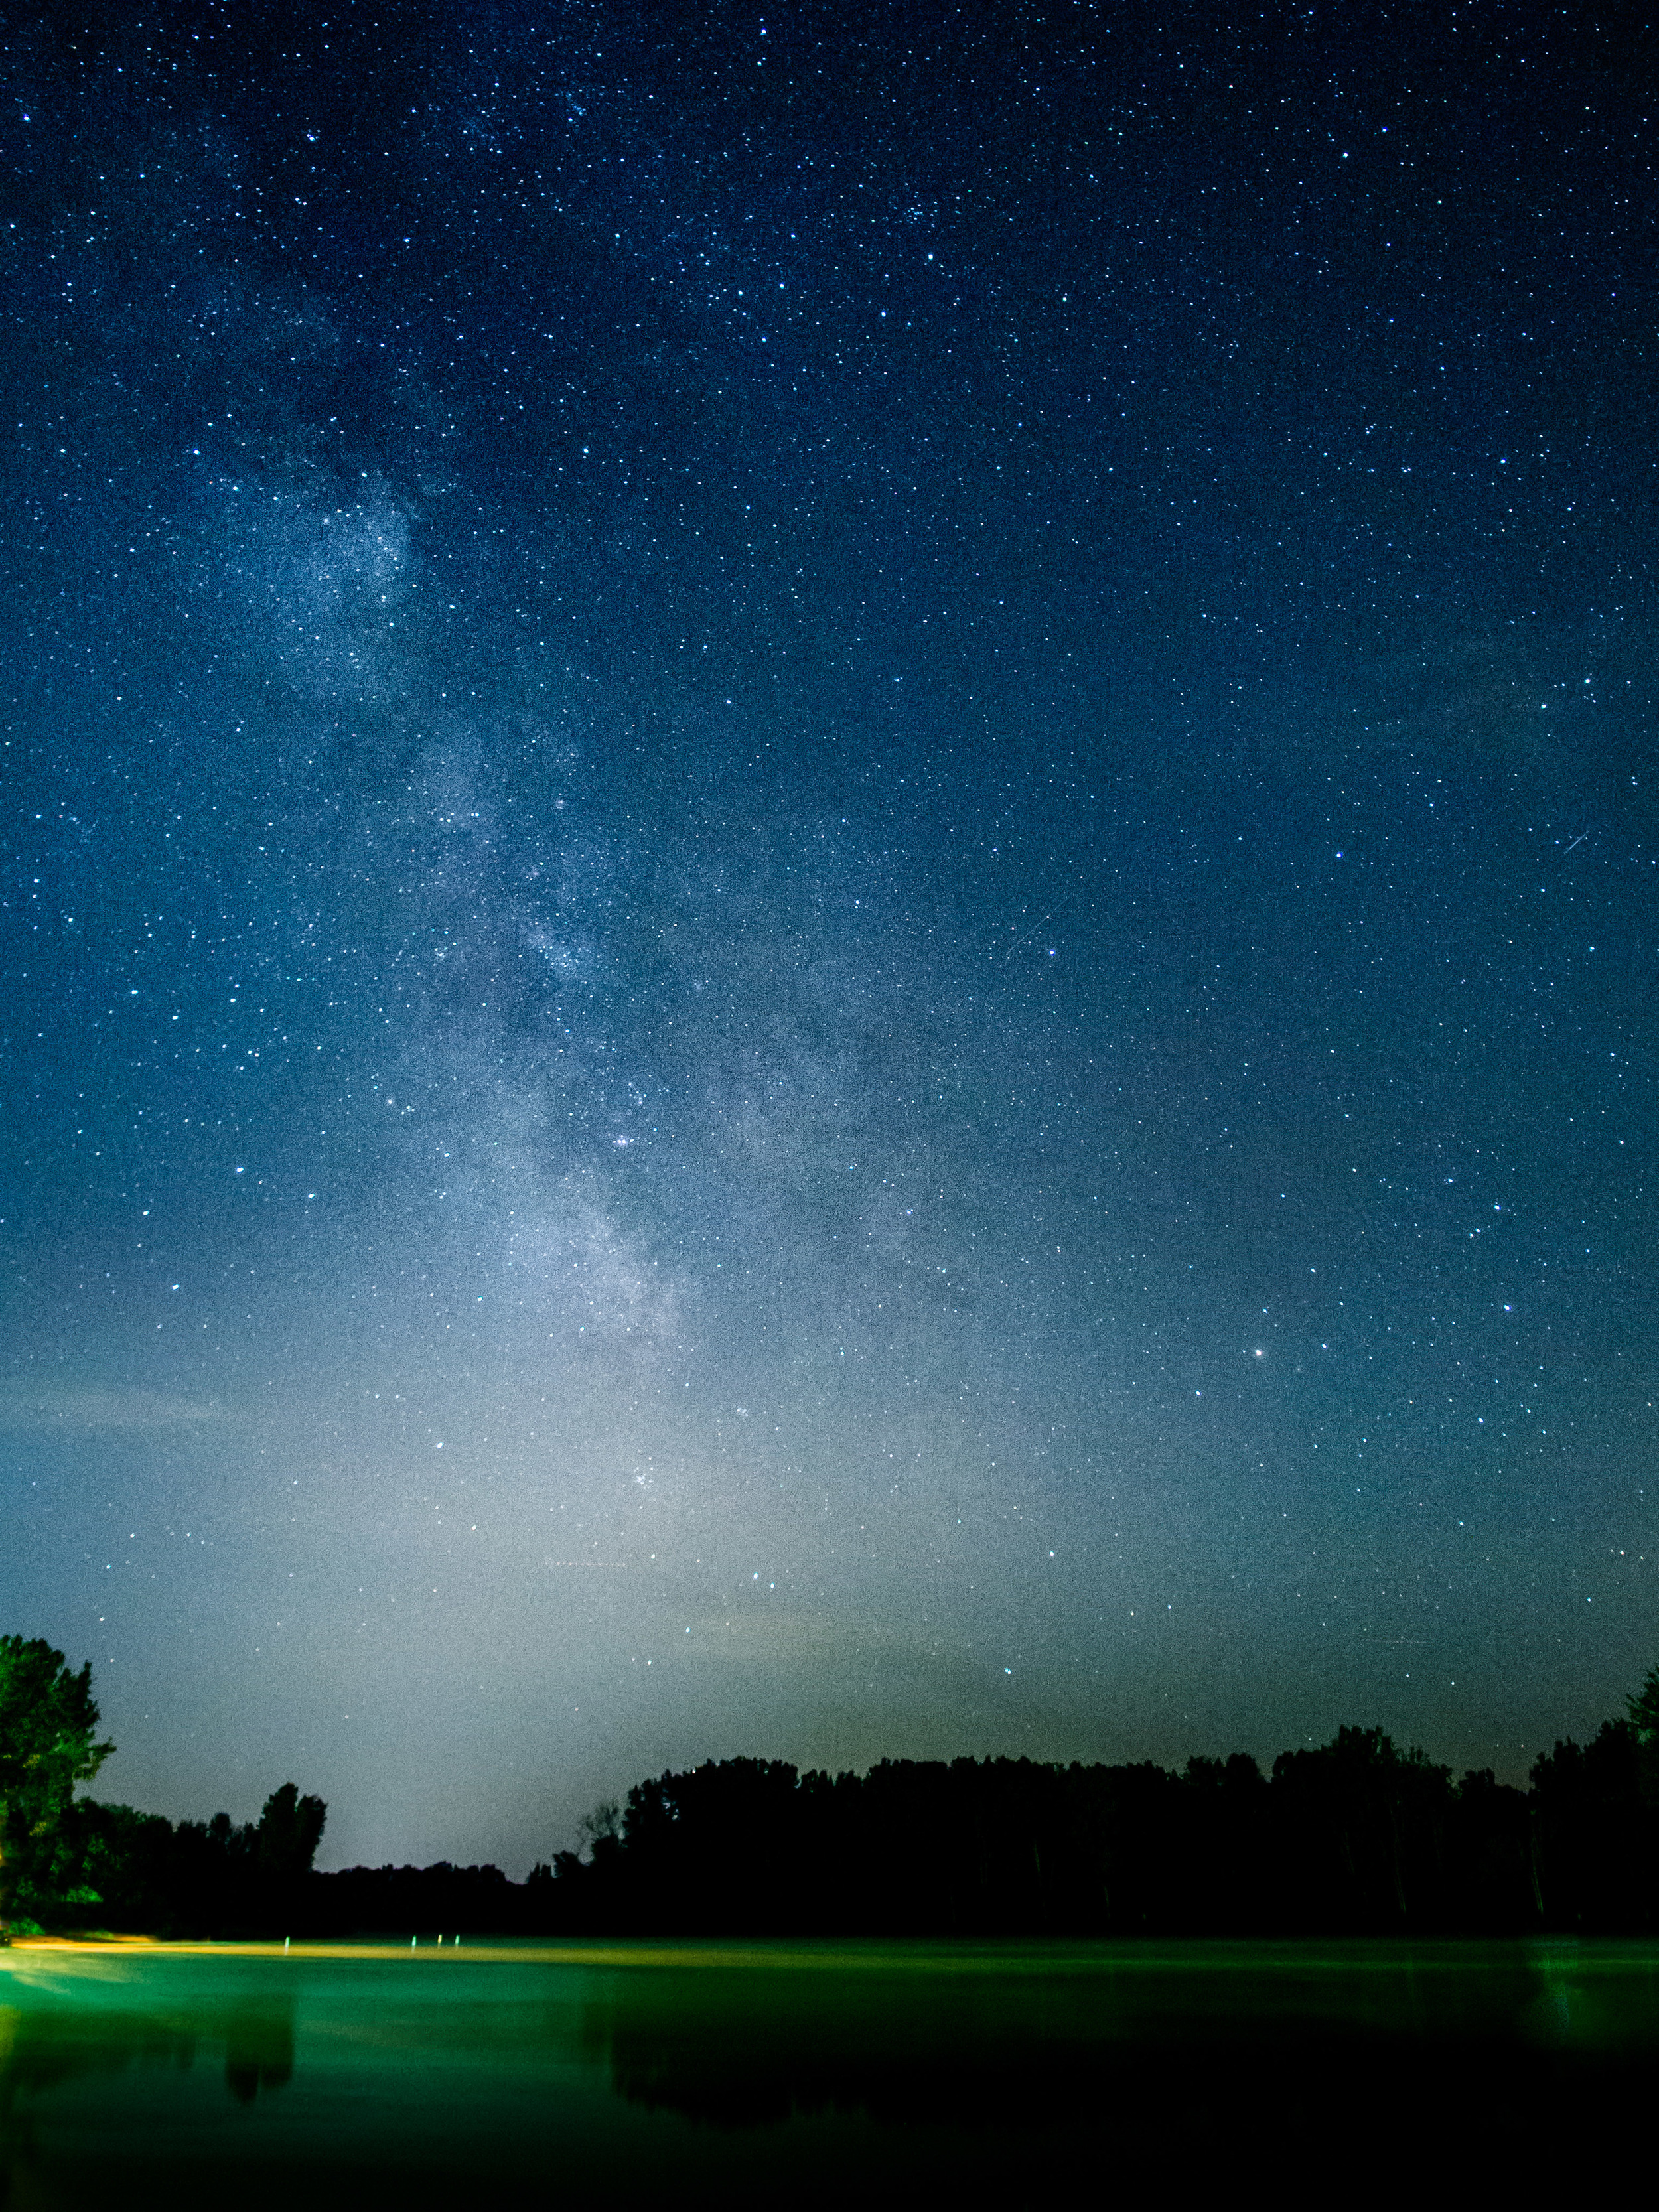 The vastness of the universe.